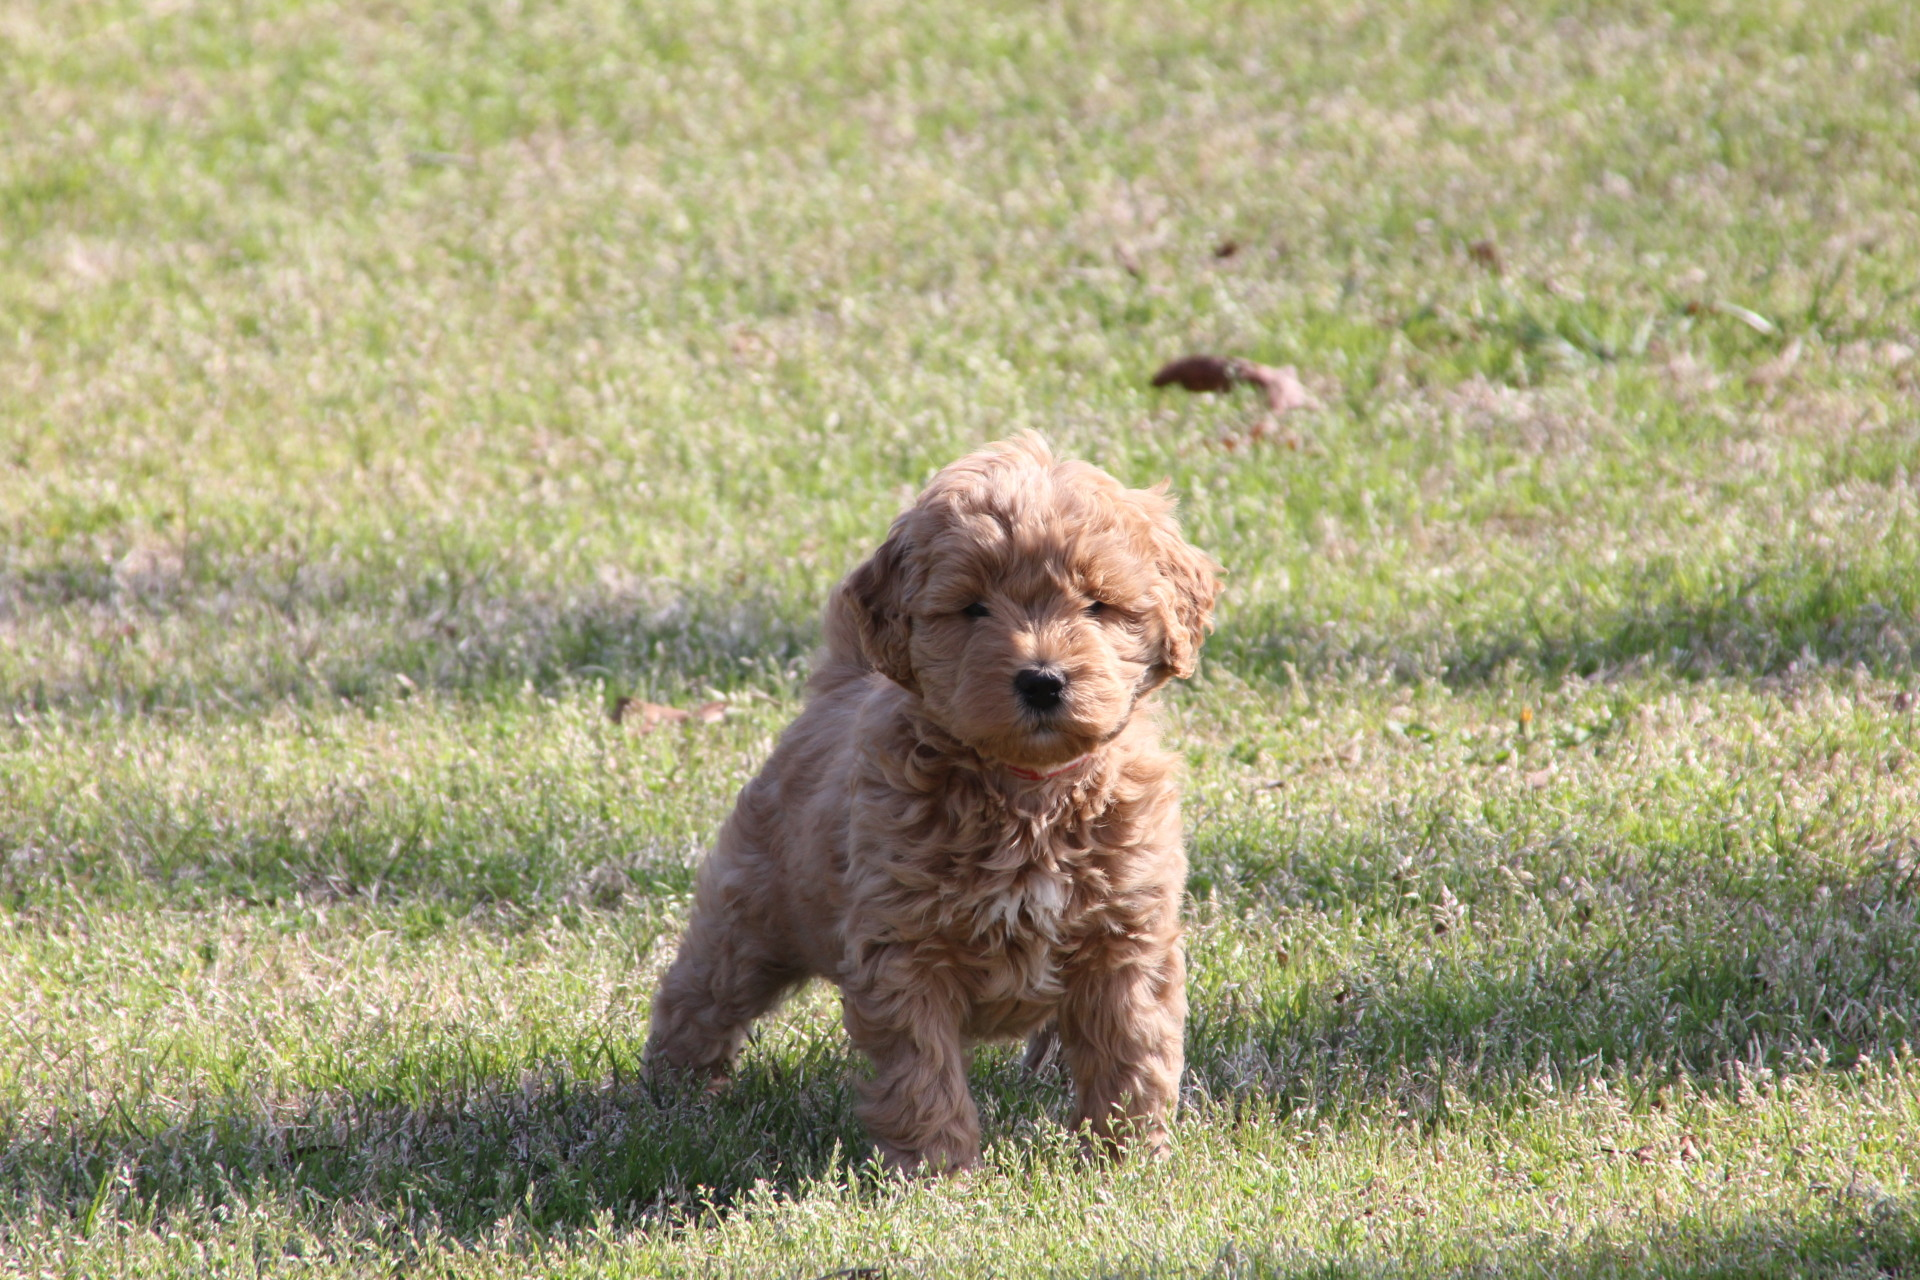 championsoftheheartgoldendoodles,goldendoodlepuppies,georgiagoldendoodles